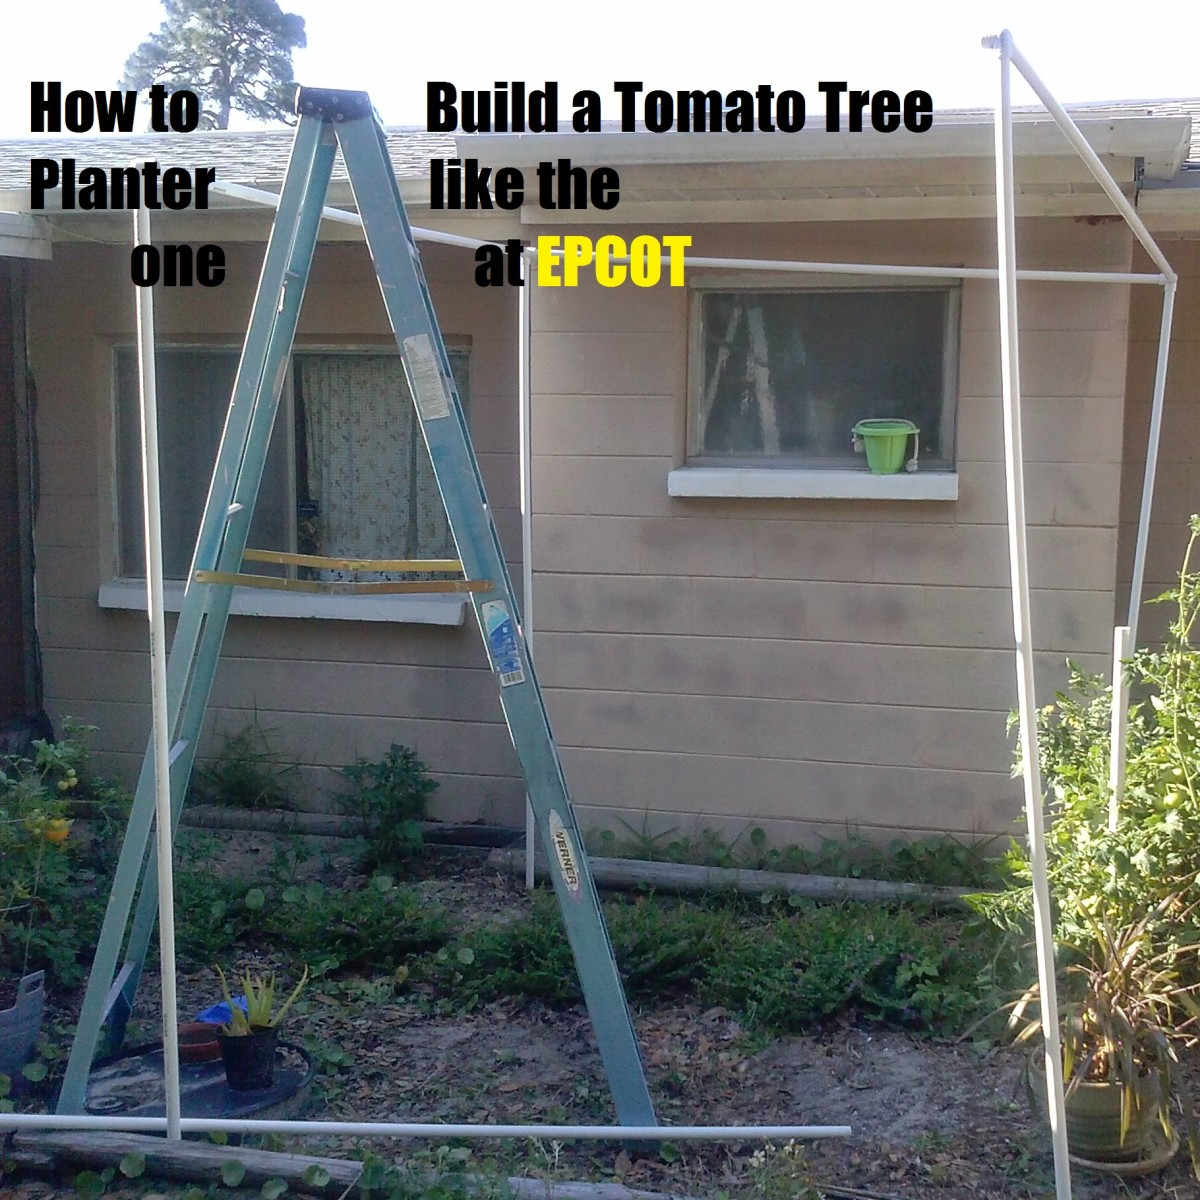 How to Build a Tomato Tree Plant Like Disneyworld's Epcot Ride